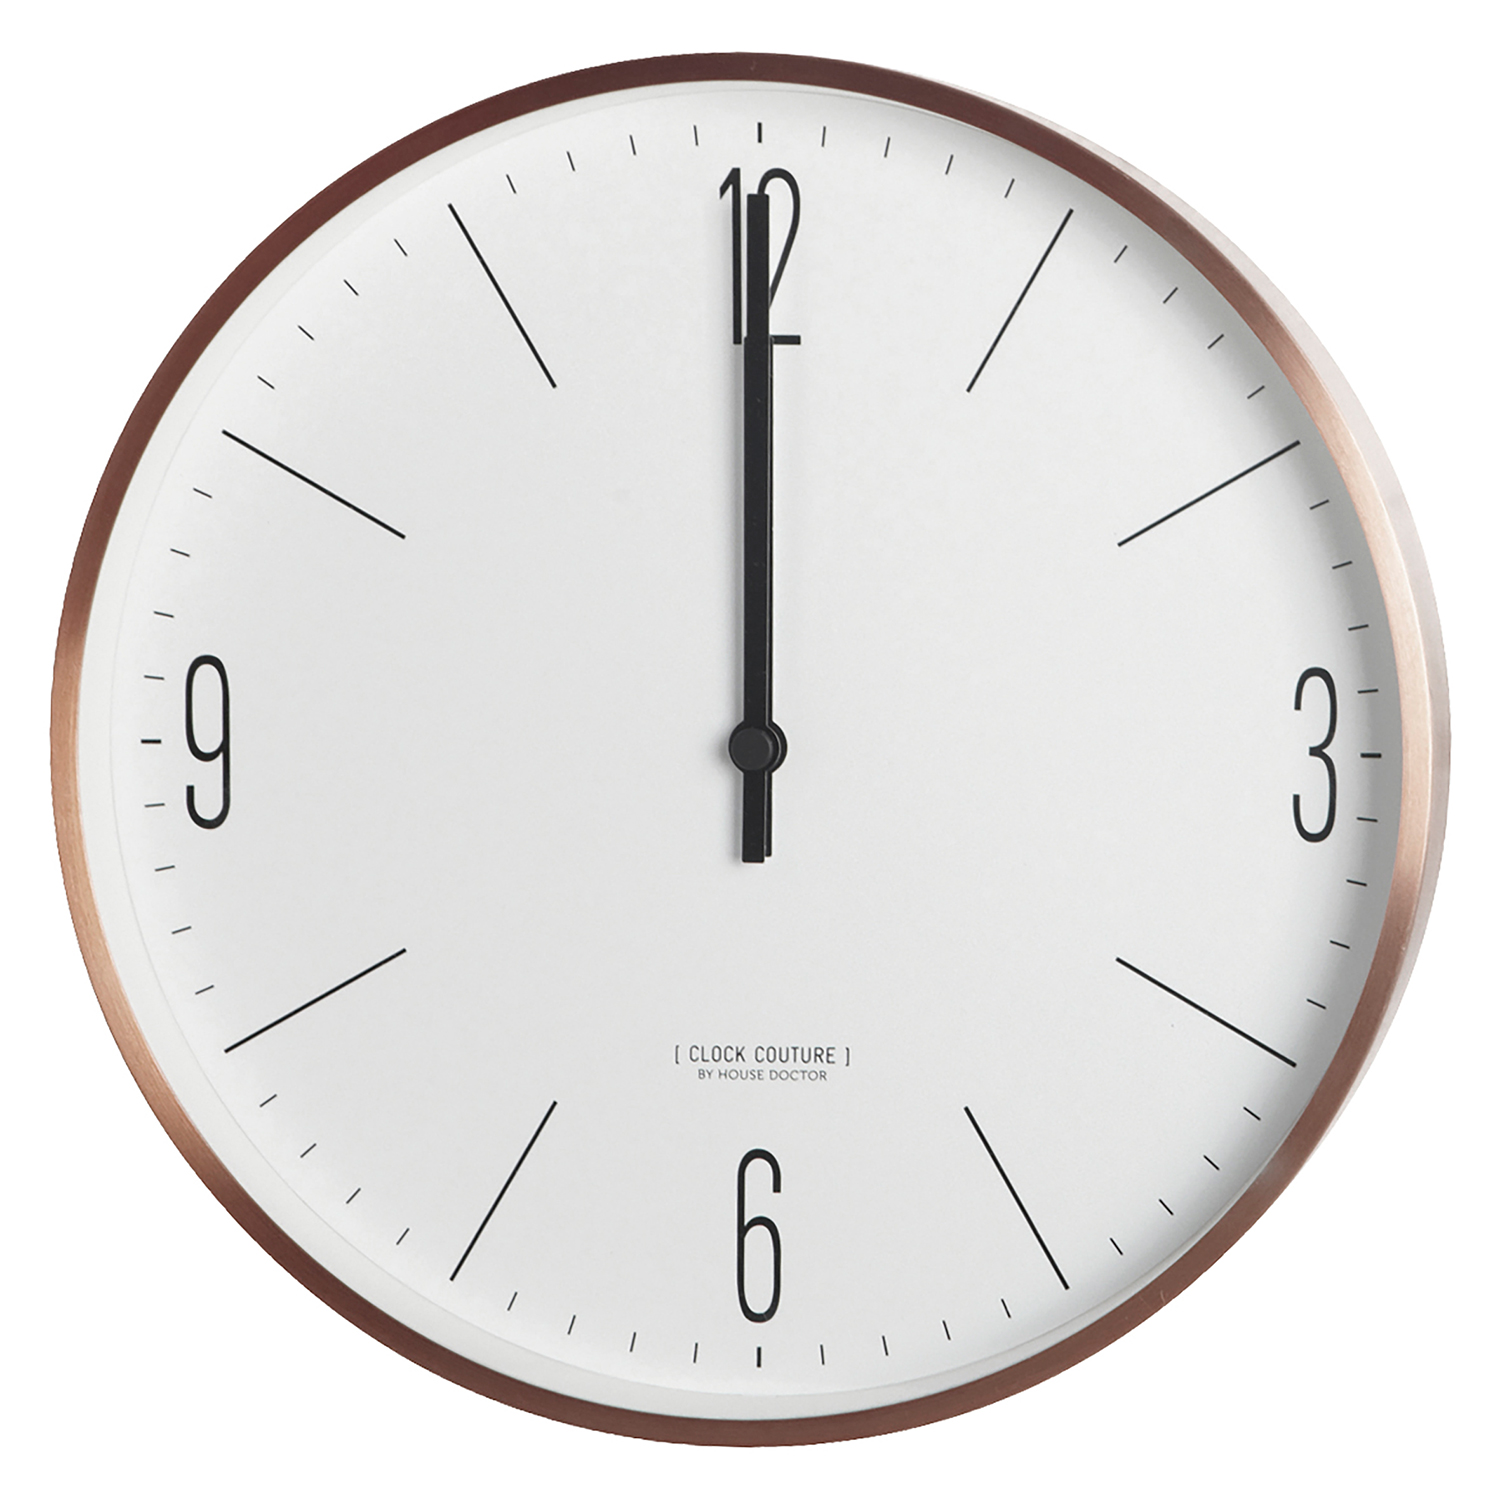 couture wall clock house doctor house doctor. Black Bedroom Furniture Sets. Home Design Ideas